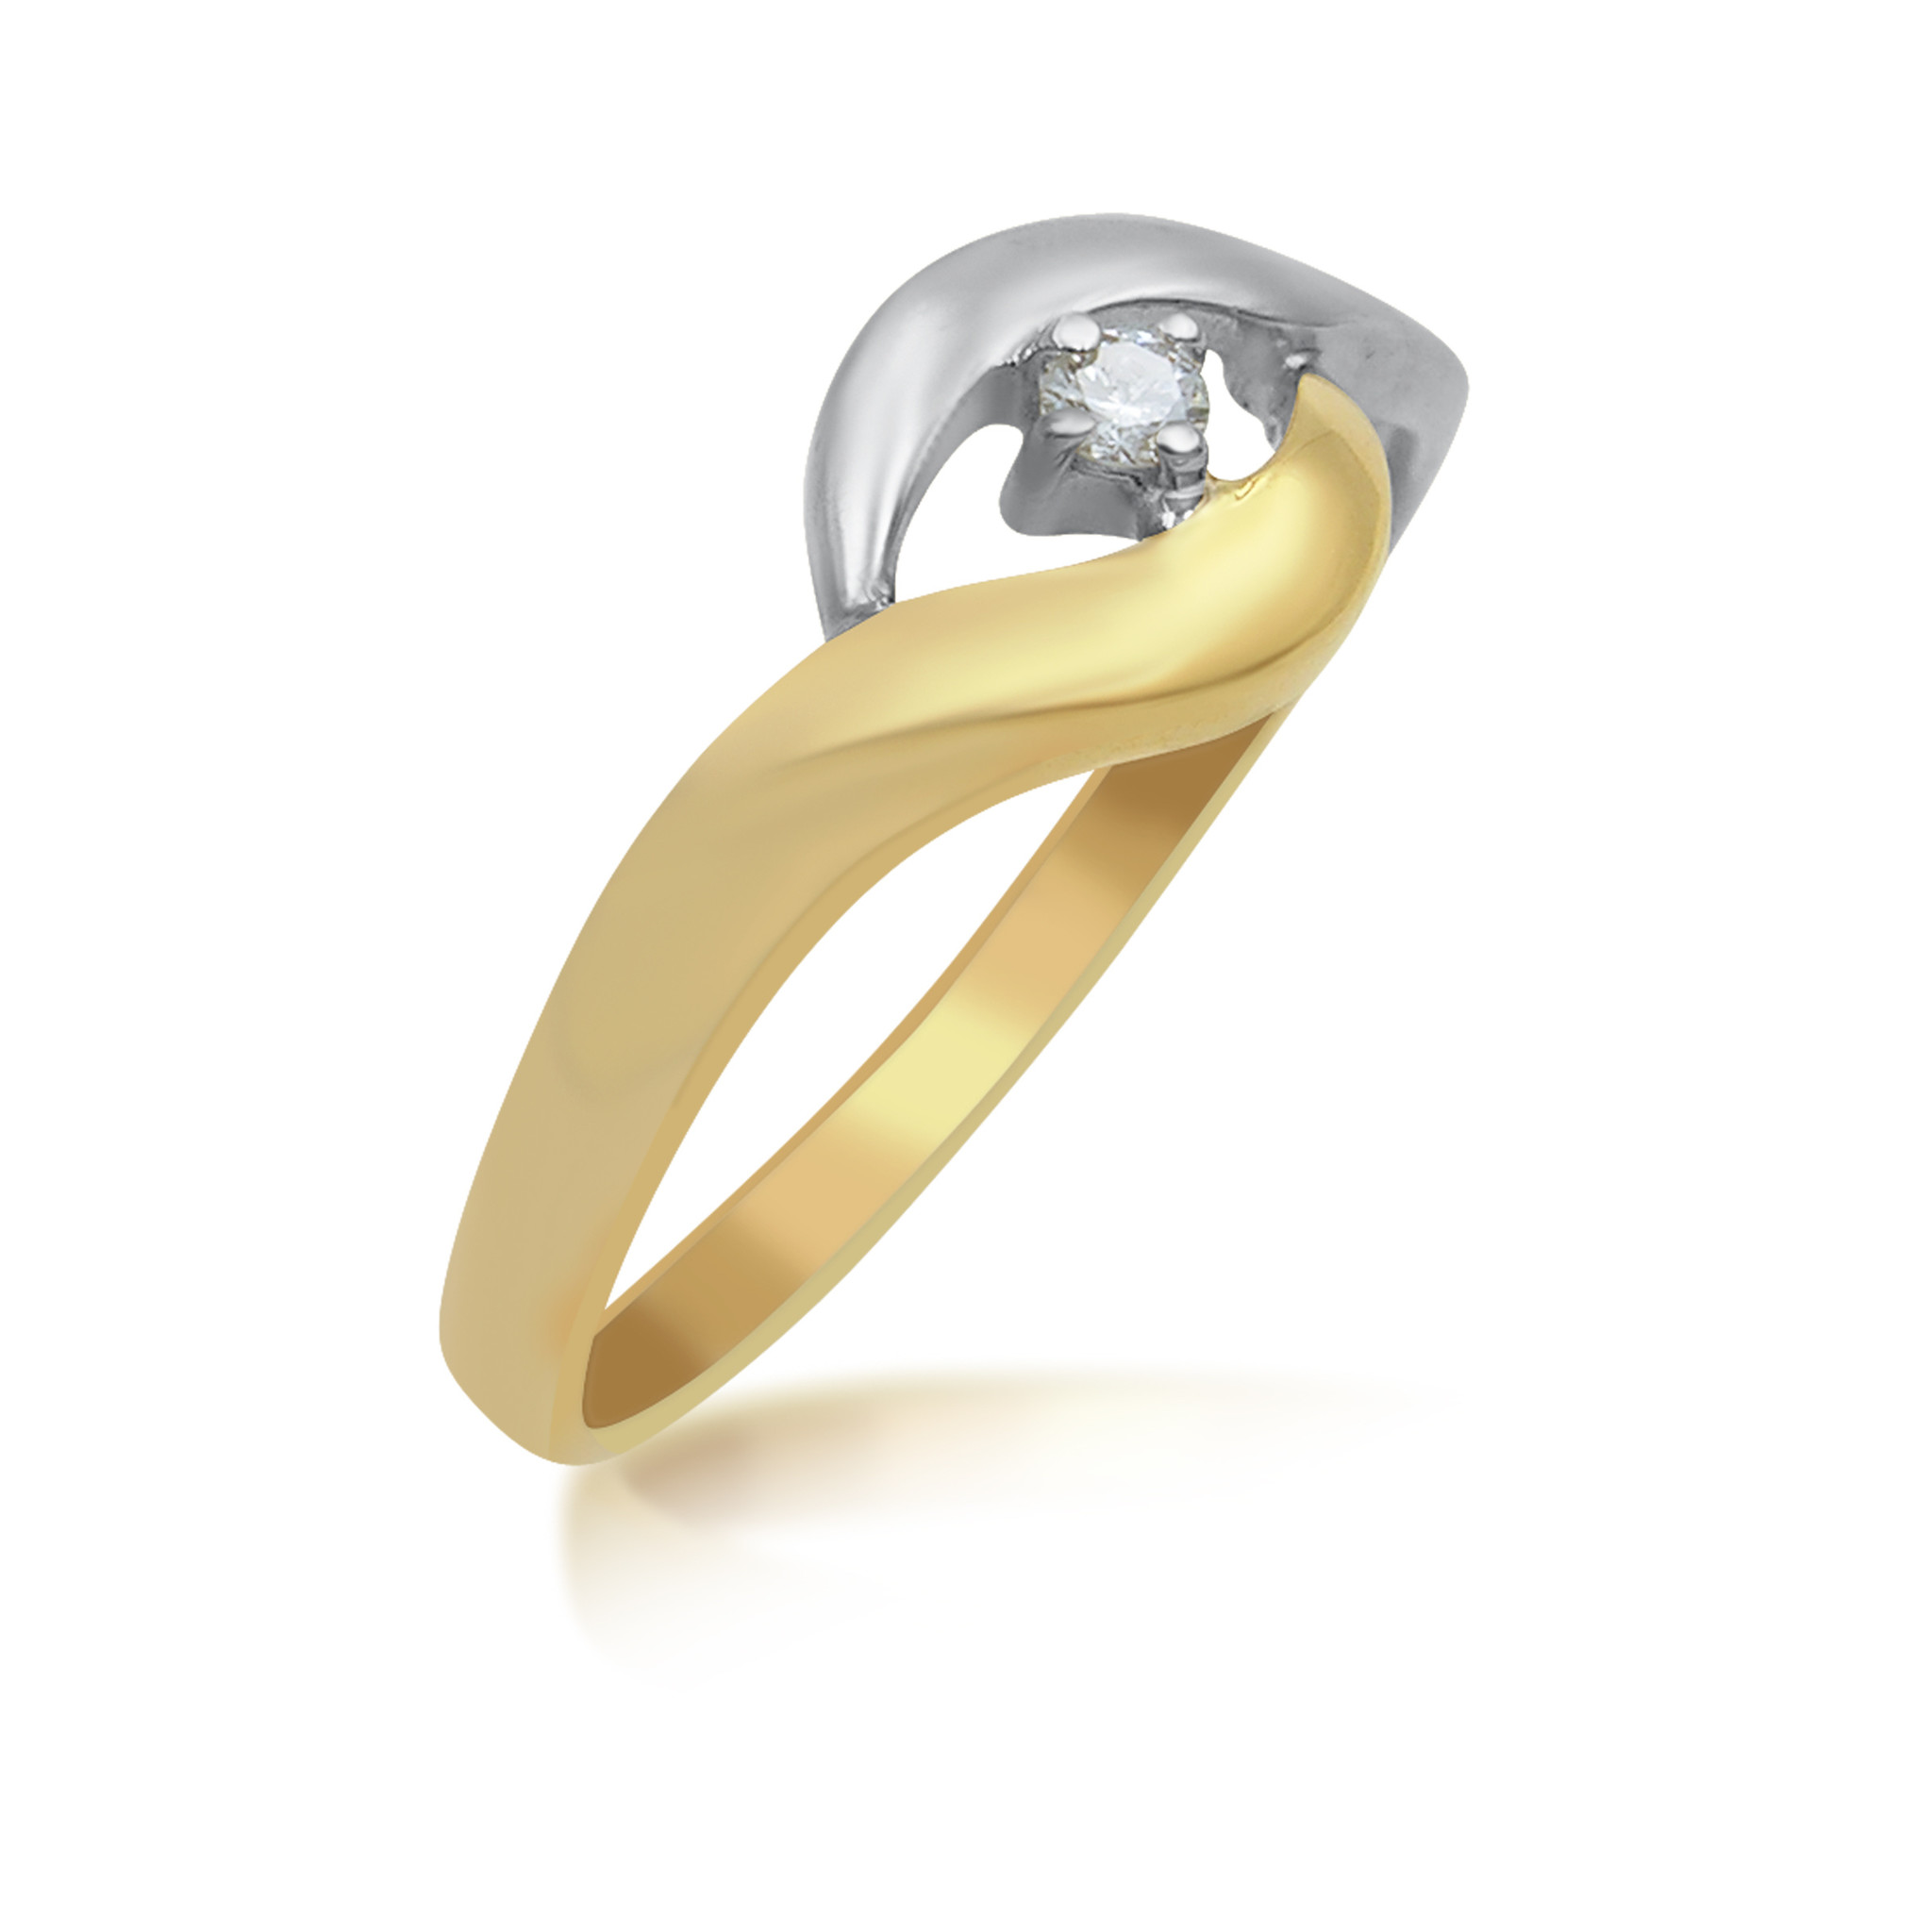 18kt yellow and white gold engagement ring with 0.03 ct diamond